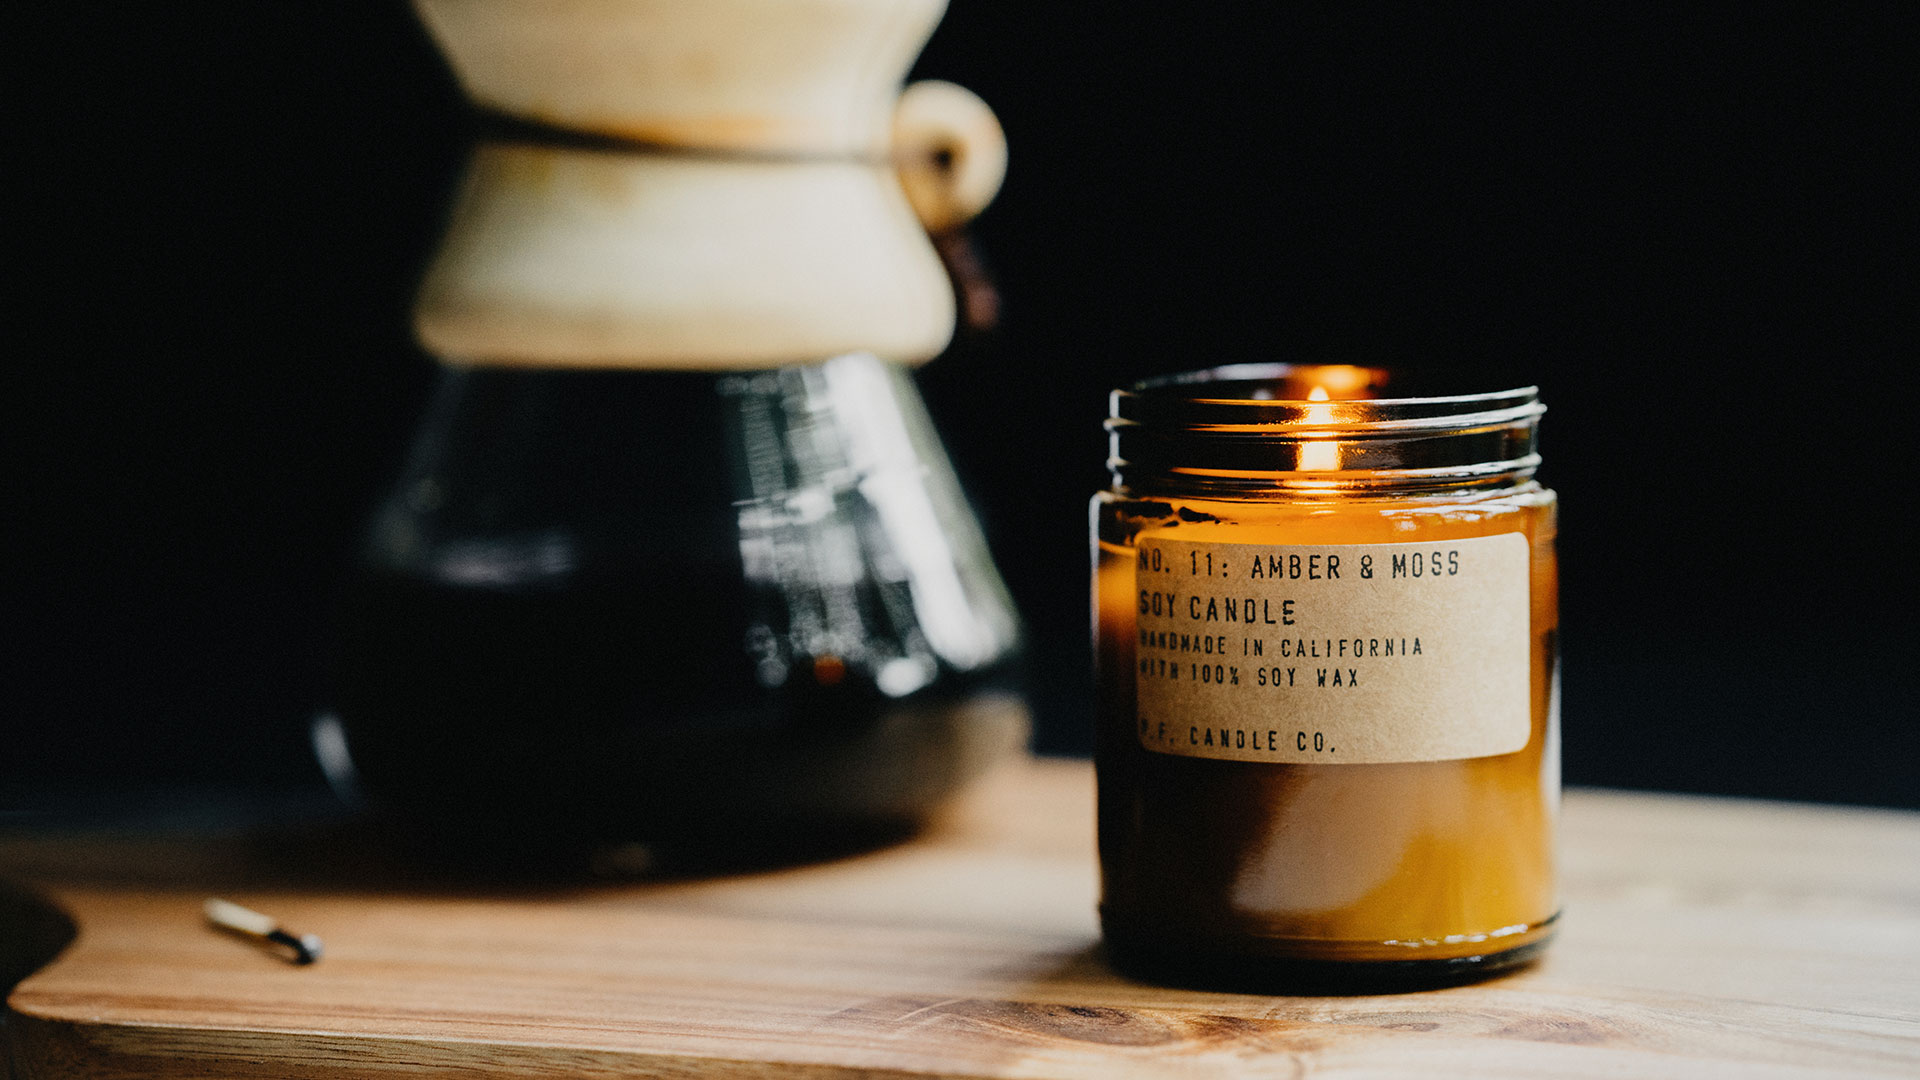 P.F scented candles - amber and moss